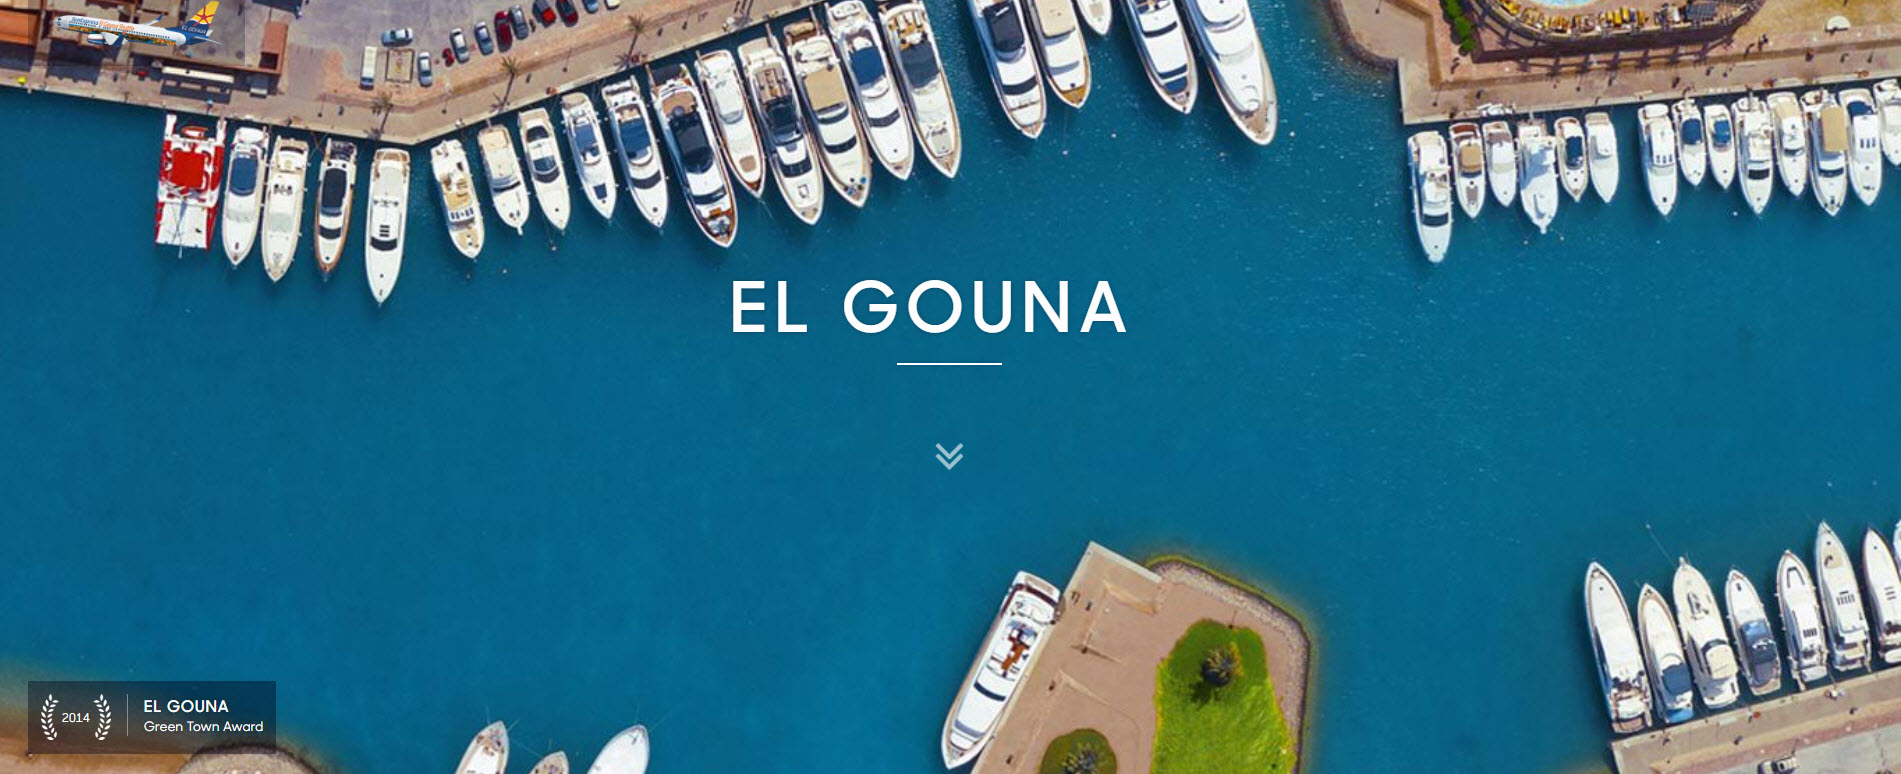 El Gouna Red Sea